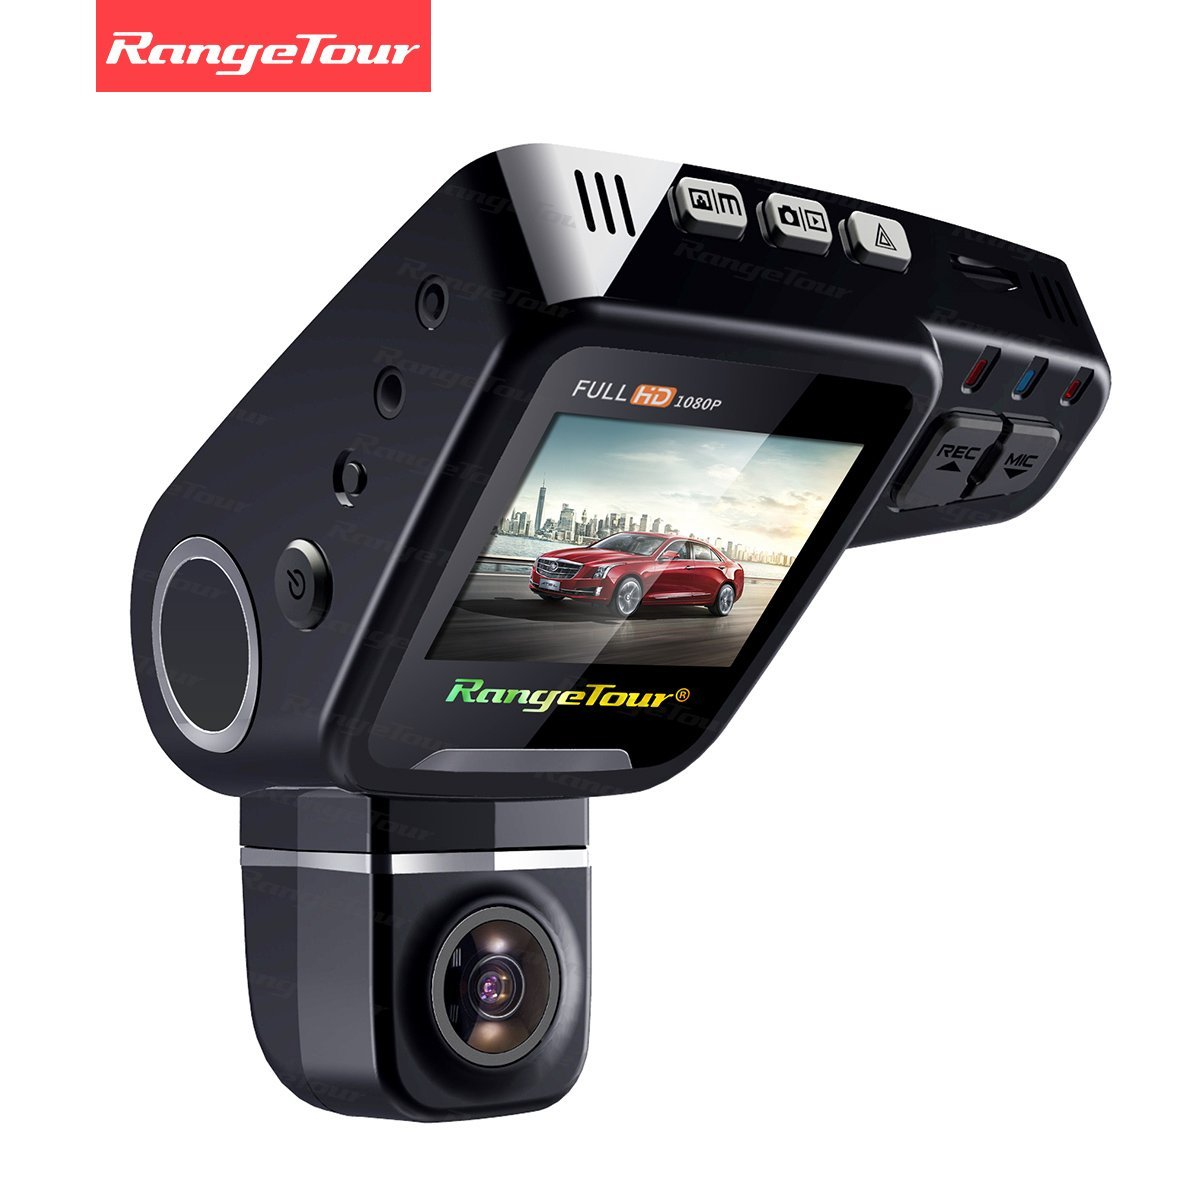 Rangetour C10s Car Dash Cam 2.0' LCD HD 1080P 170 Degree Wide Angle Nigth Vision Dashboard Hidden Video Recorder Camera with Novatek NT96650 Chip G- Sensor WDR Loop Recording, Free gift: 16GB Card